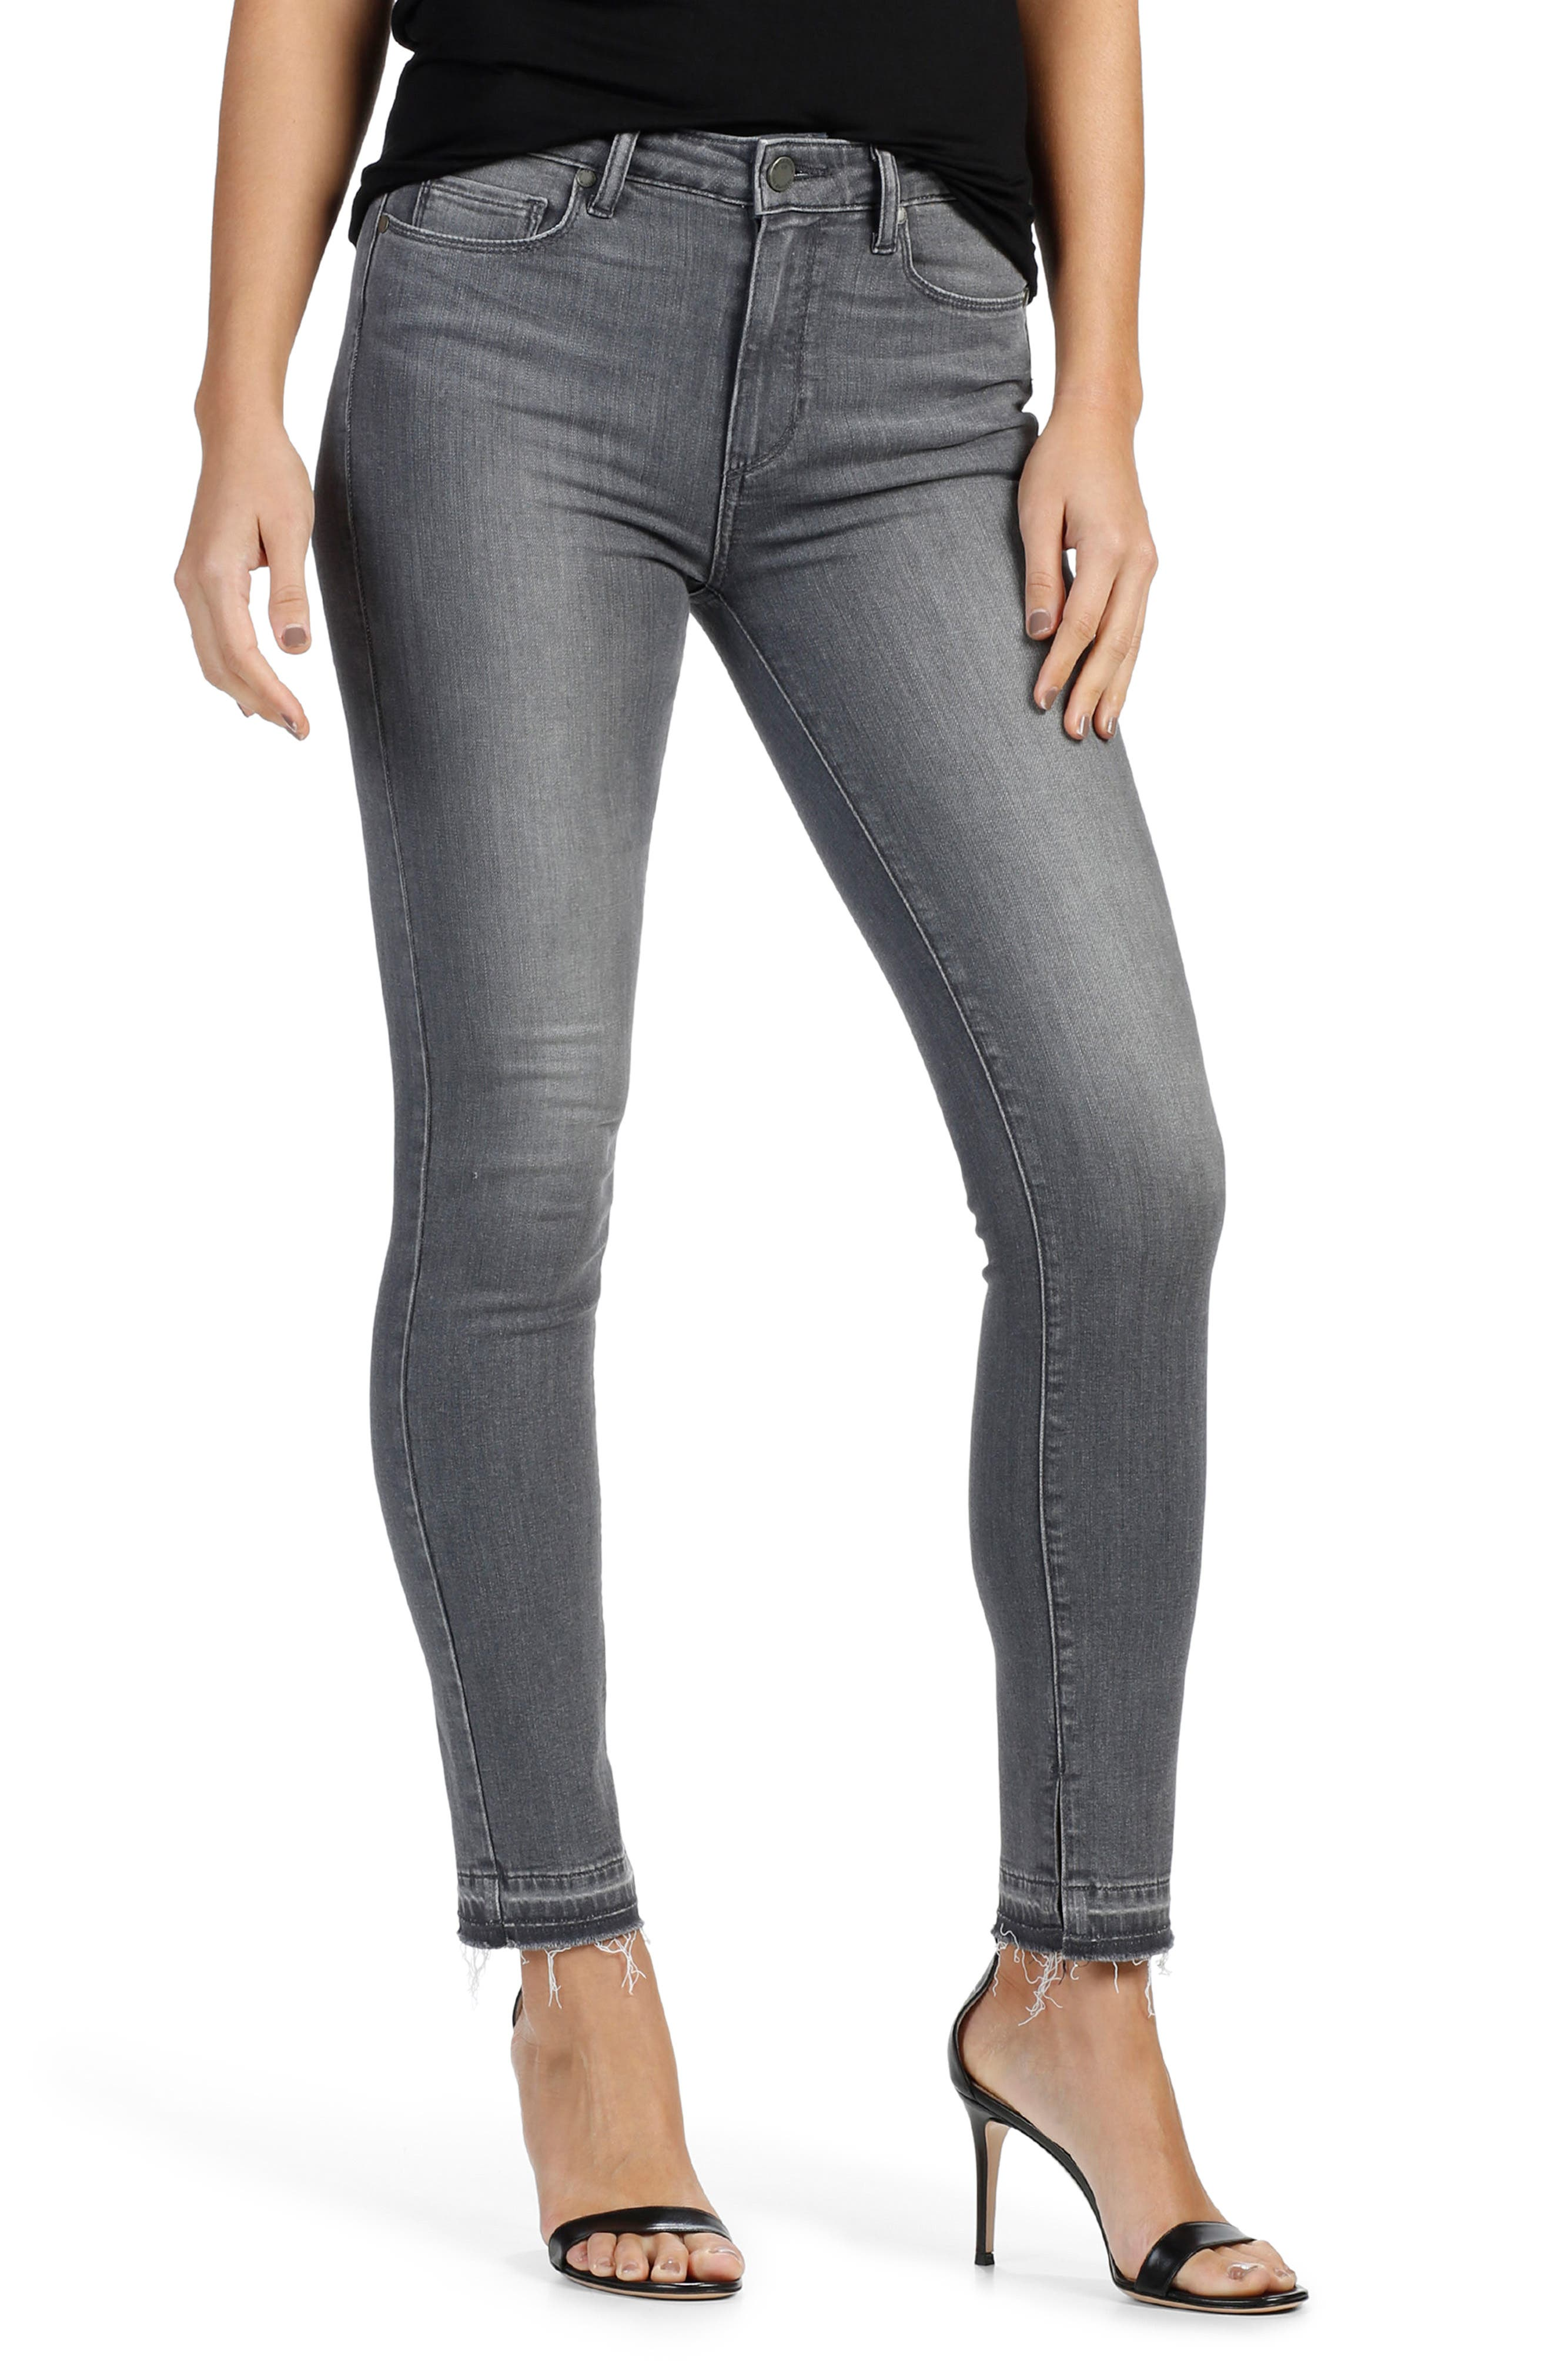 PAIGE Transcend - Hoxton High Waist Ankle Peg Skinny Jeans (Ivy)